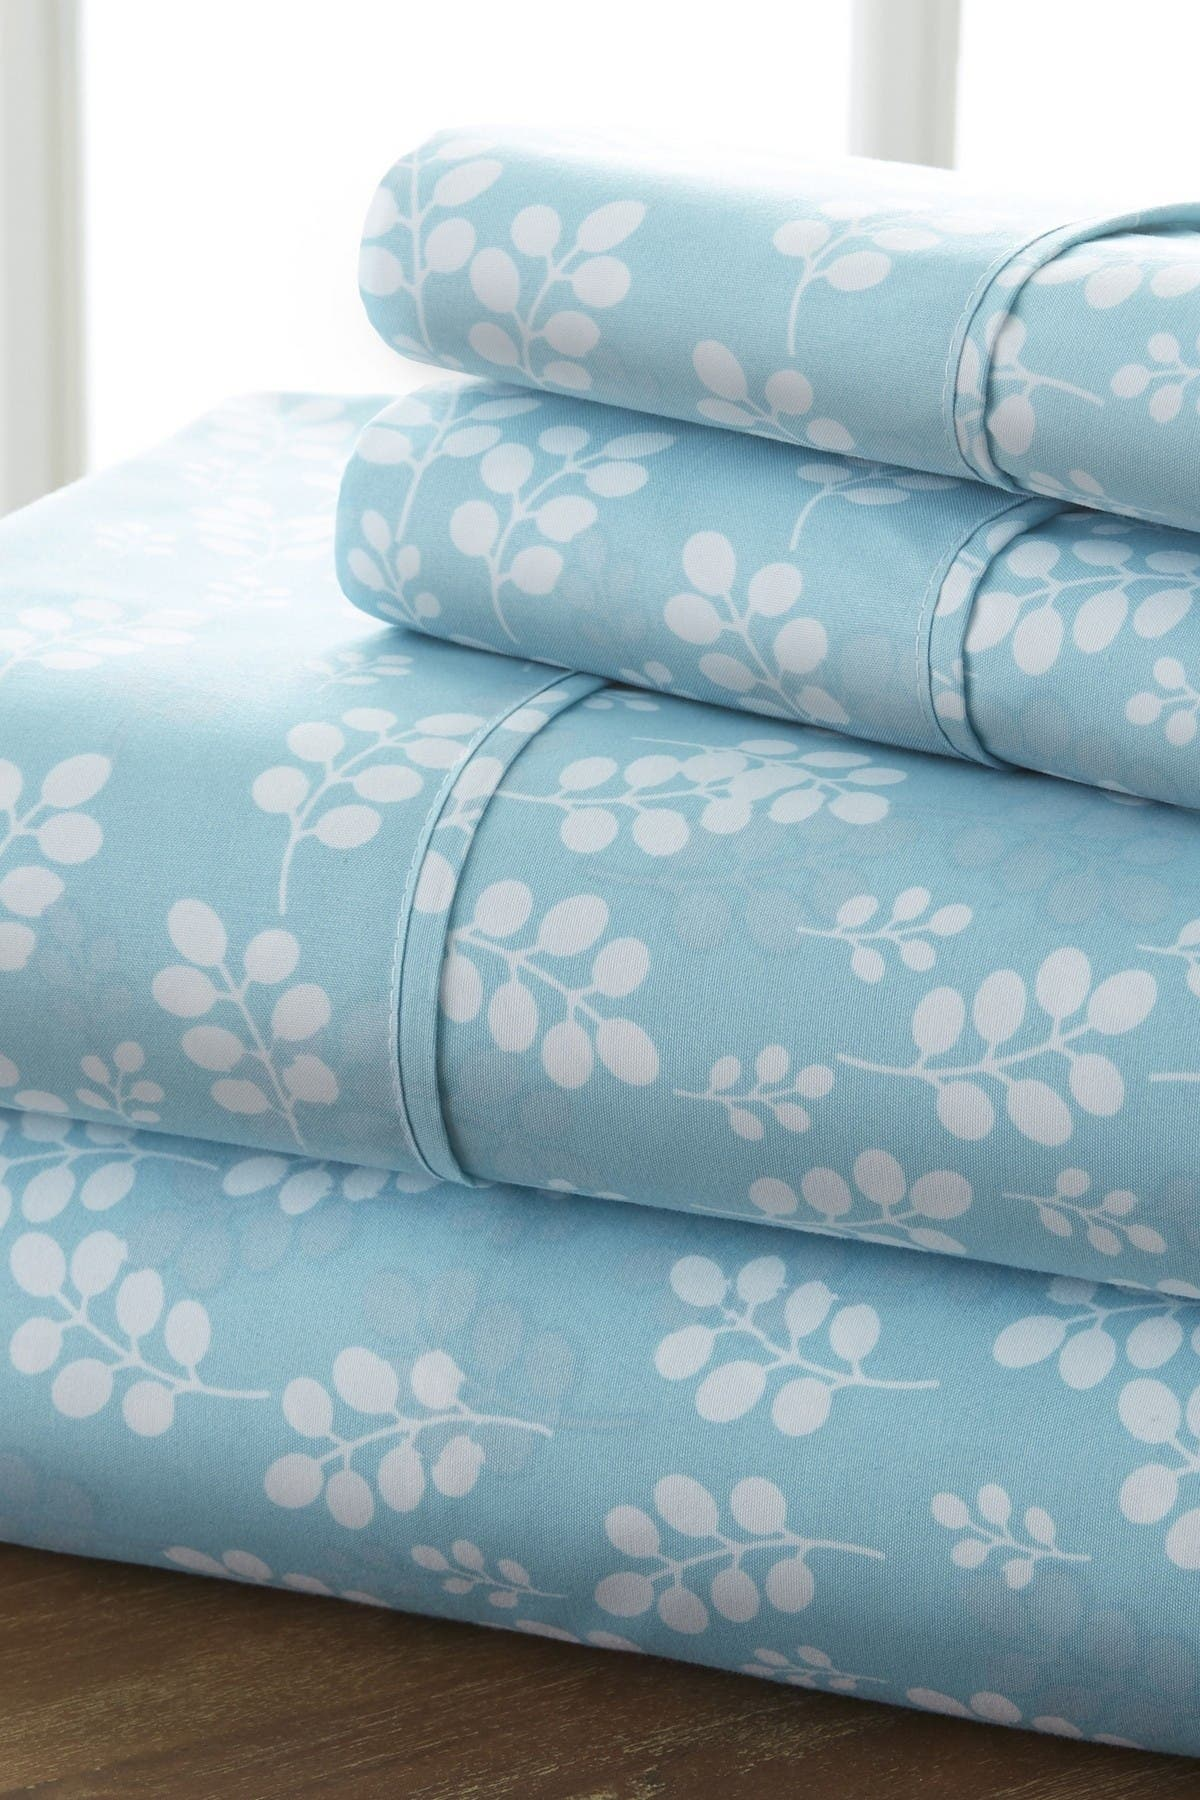 Image of IENJOY HOME The Home Spun Premium Ultra Soft Wheat Pattern 4-Piece Queen Bed Sheet Set - Pale Blue